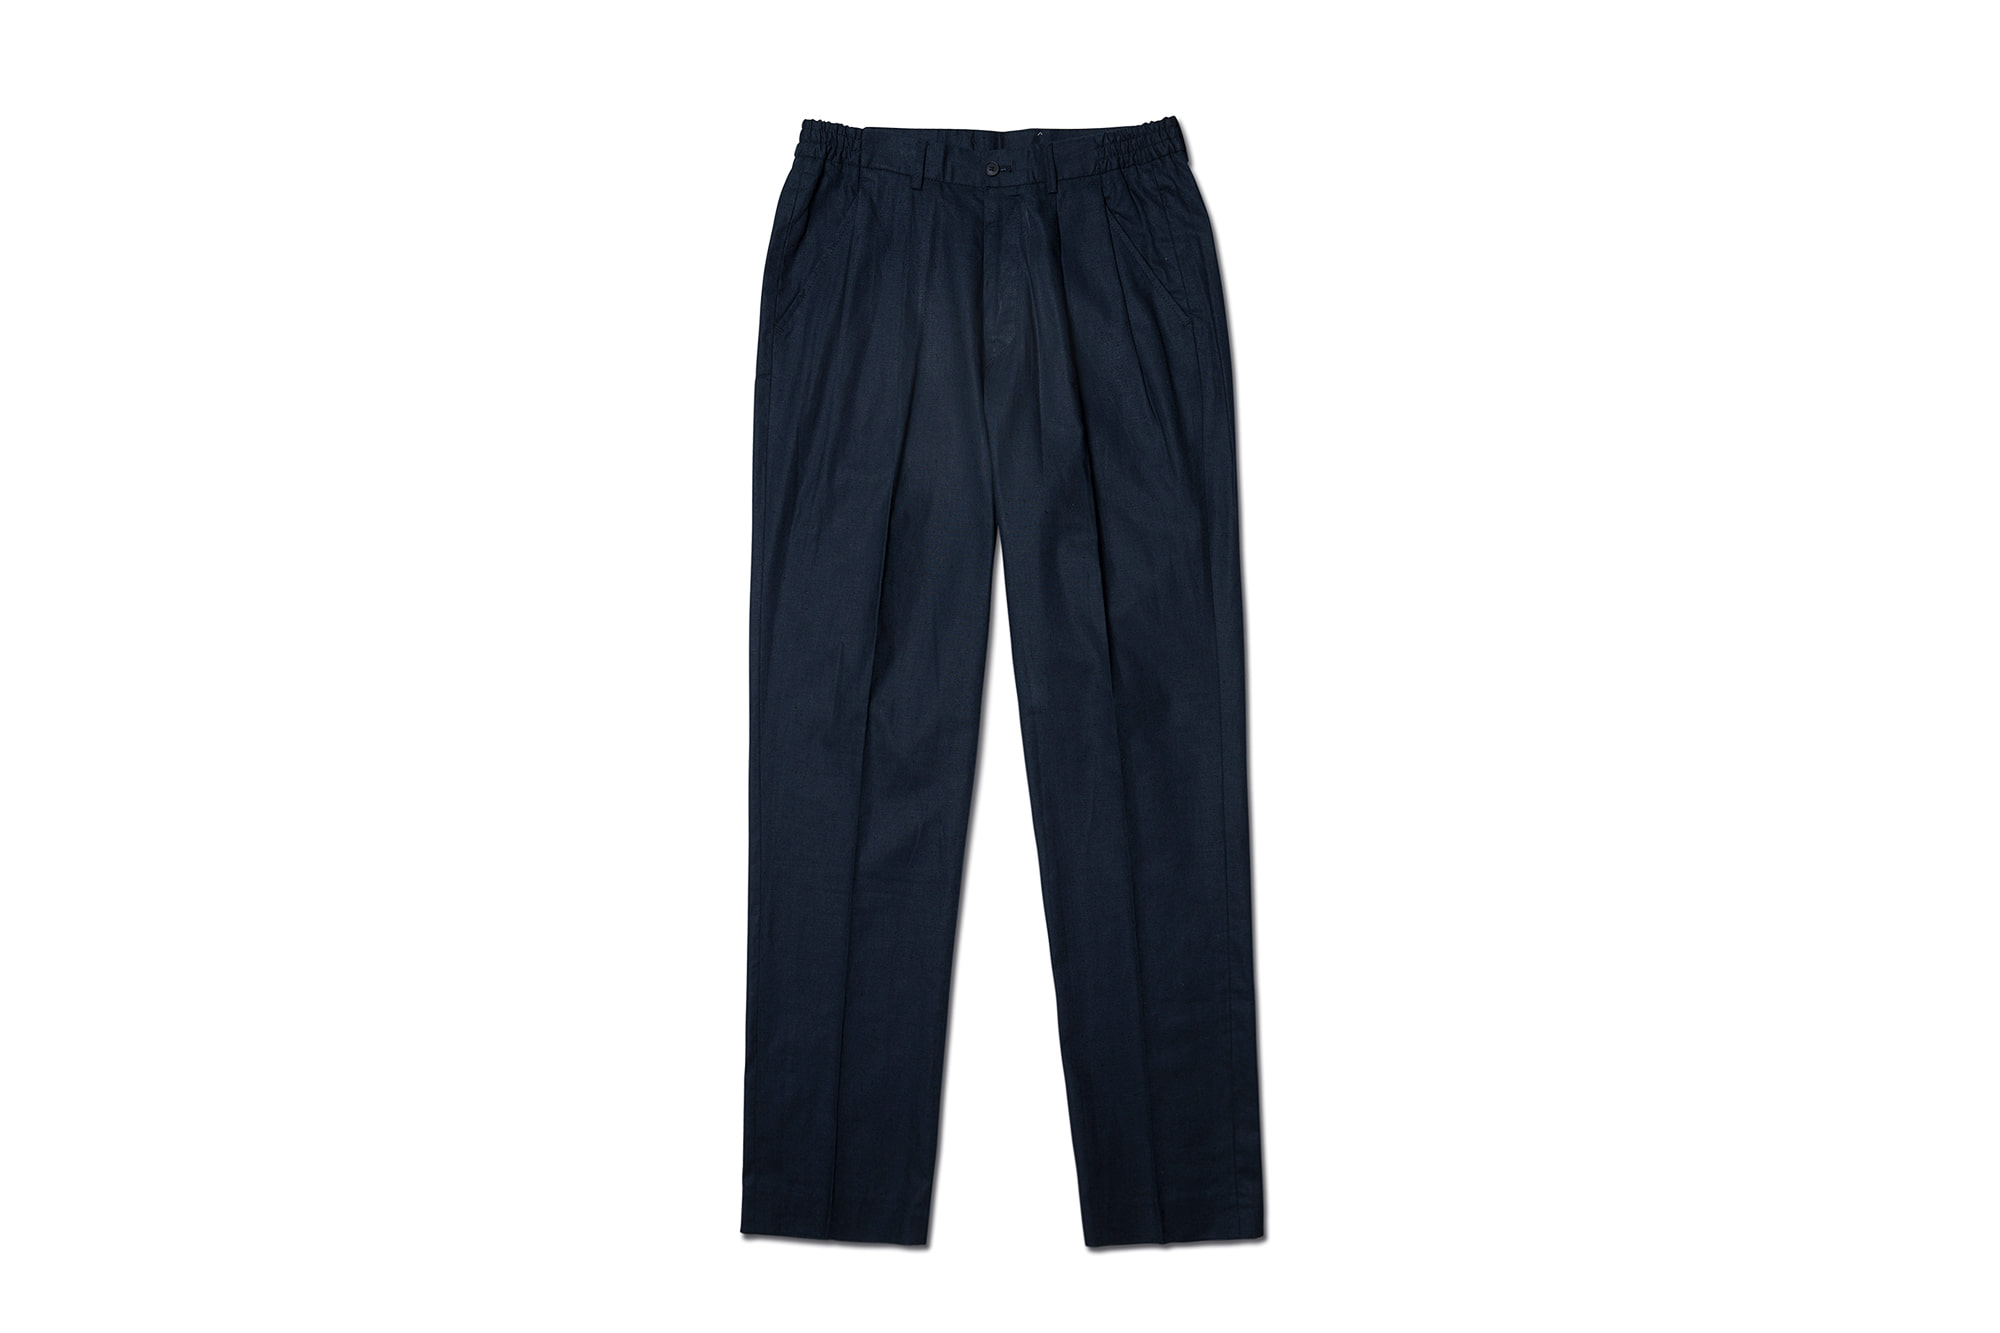 19ss Linen nice pants Navy [NIDDLE AND STITCH]